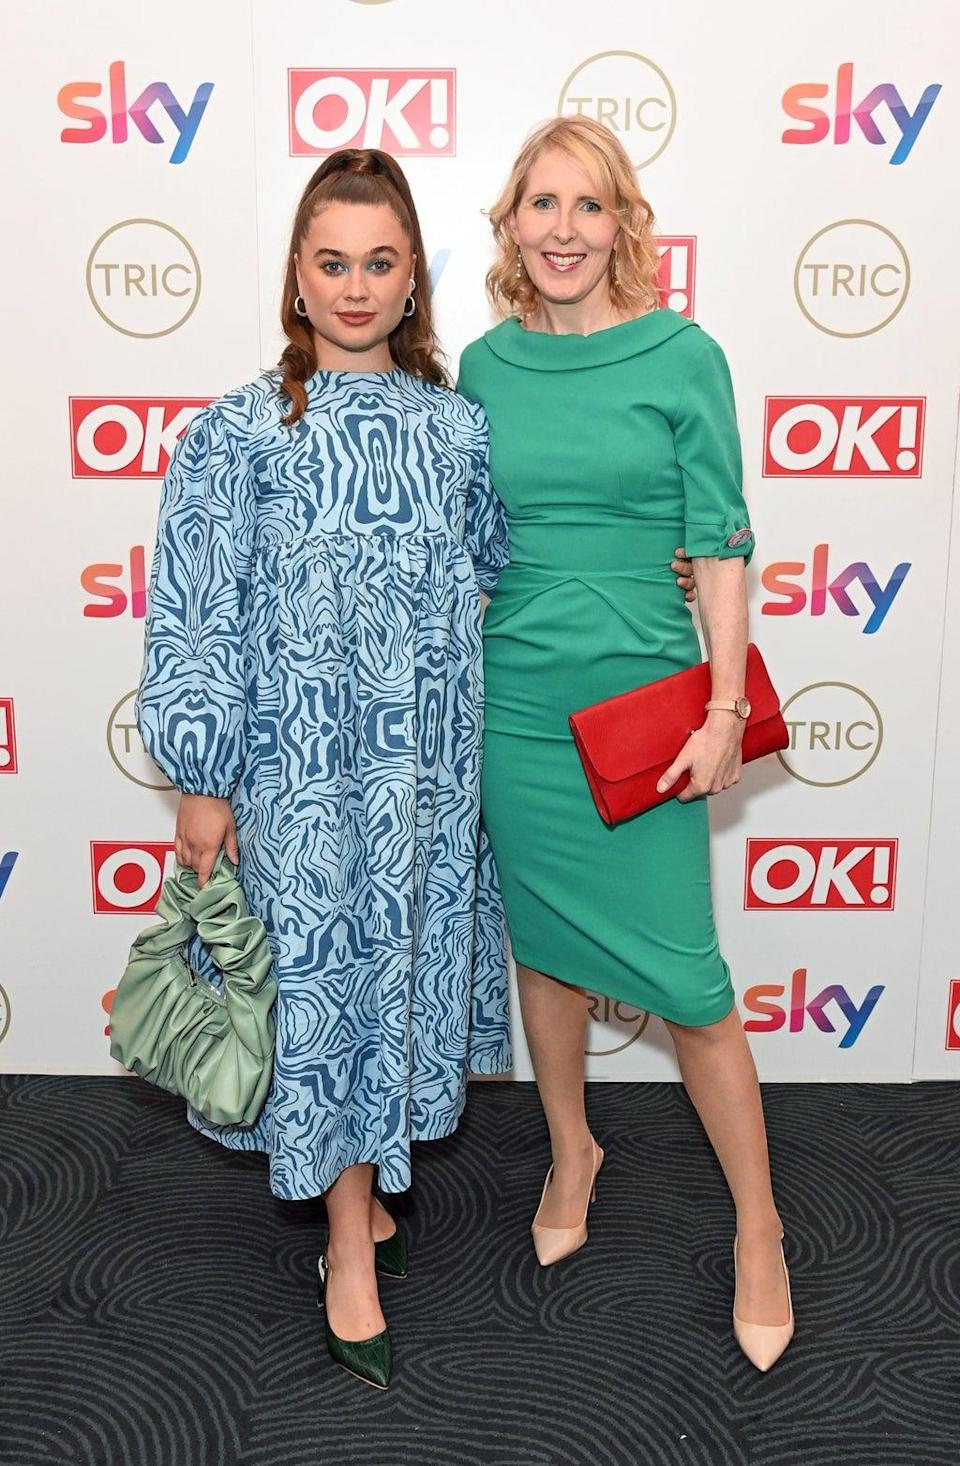 Megan Cusack and Fenella Woolgar attend The TRIC Awards 2021 (Dave Benett/Getty Images)